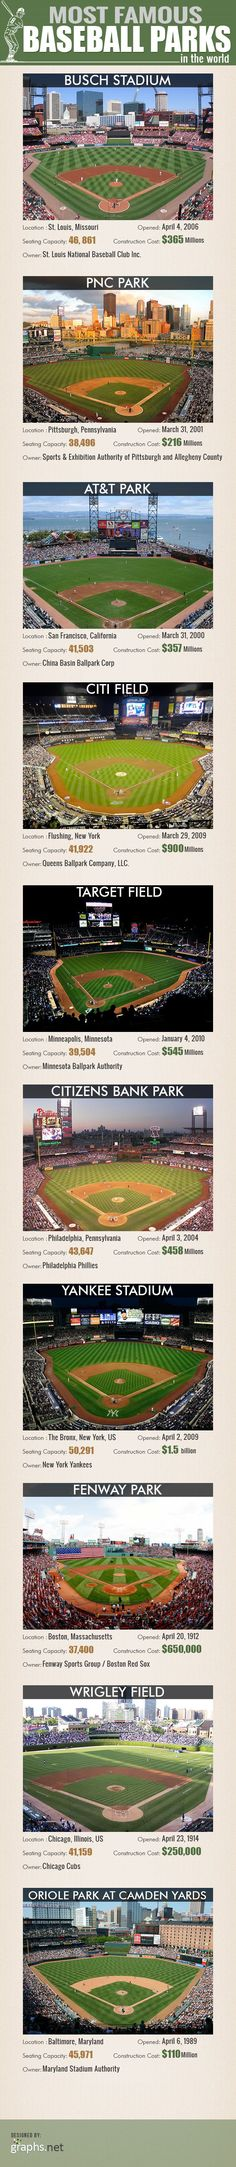 Most Famous Baseball Parks in the World - Infographic #baseballbaseballbaseball